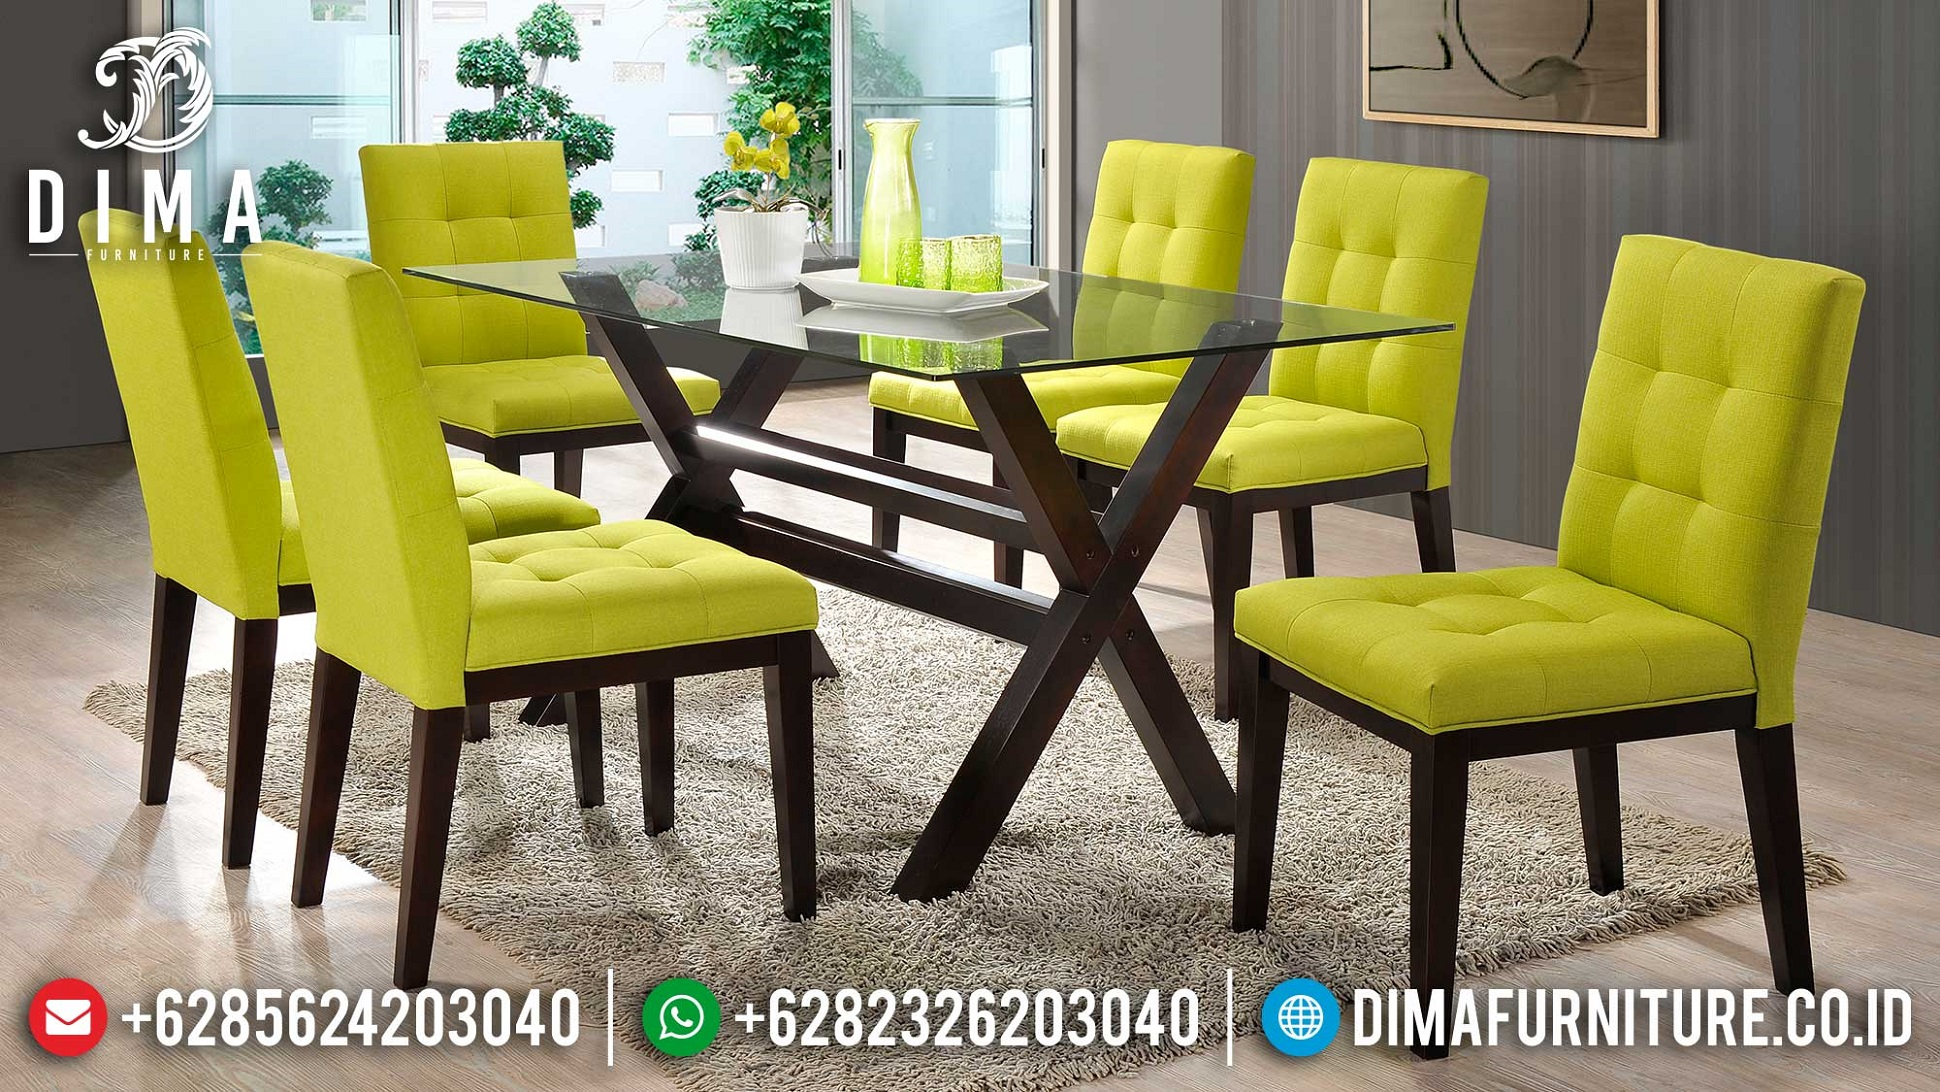 Meja Makan Minimalis Jati Top Kaca Elegant Simple Design TTJ-1702